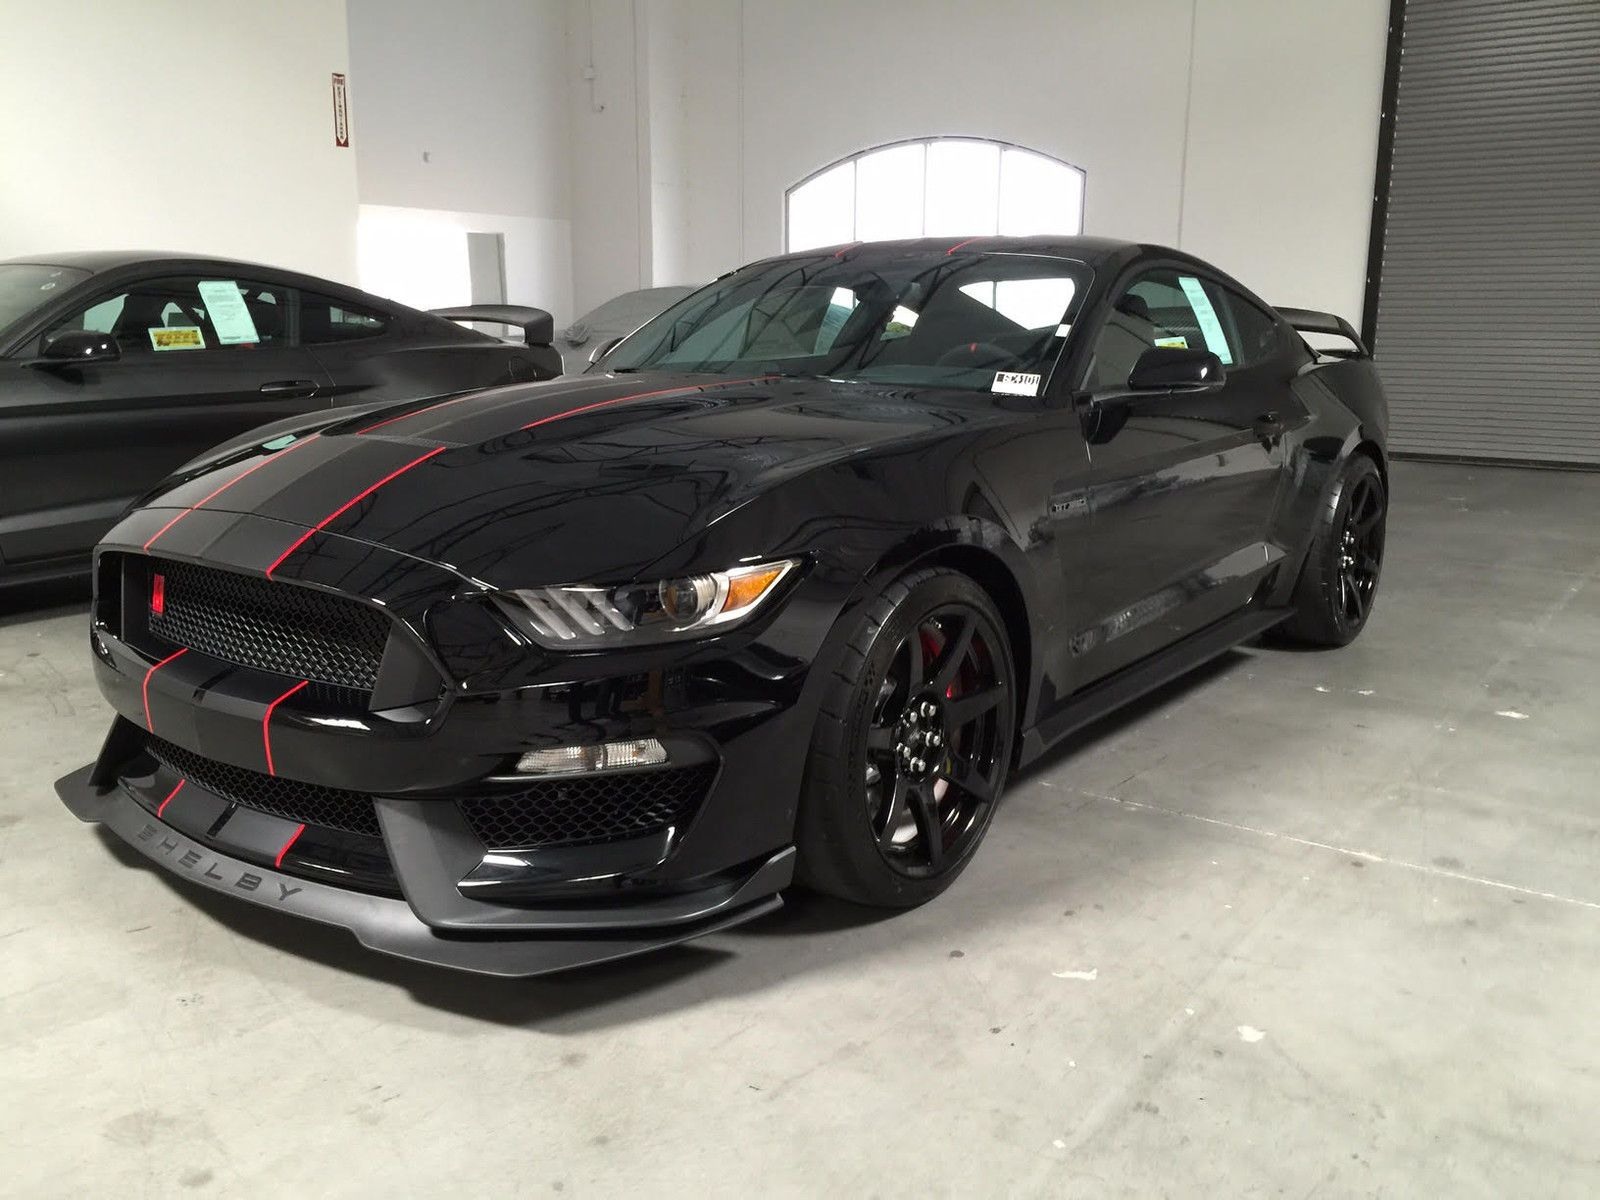 2017 Mustang Gt350 Black >> Car Brand Auctioned Ford Mustang Gt350r 2016 Car Model Ford Mustang